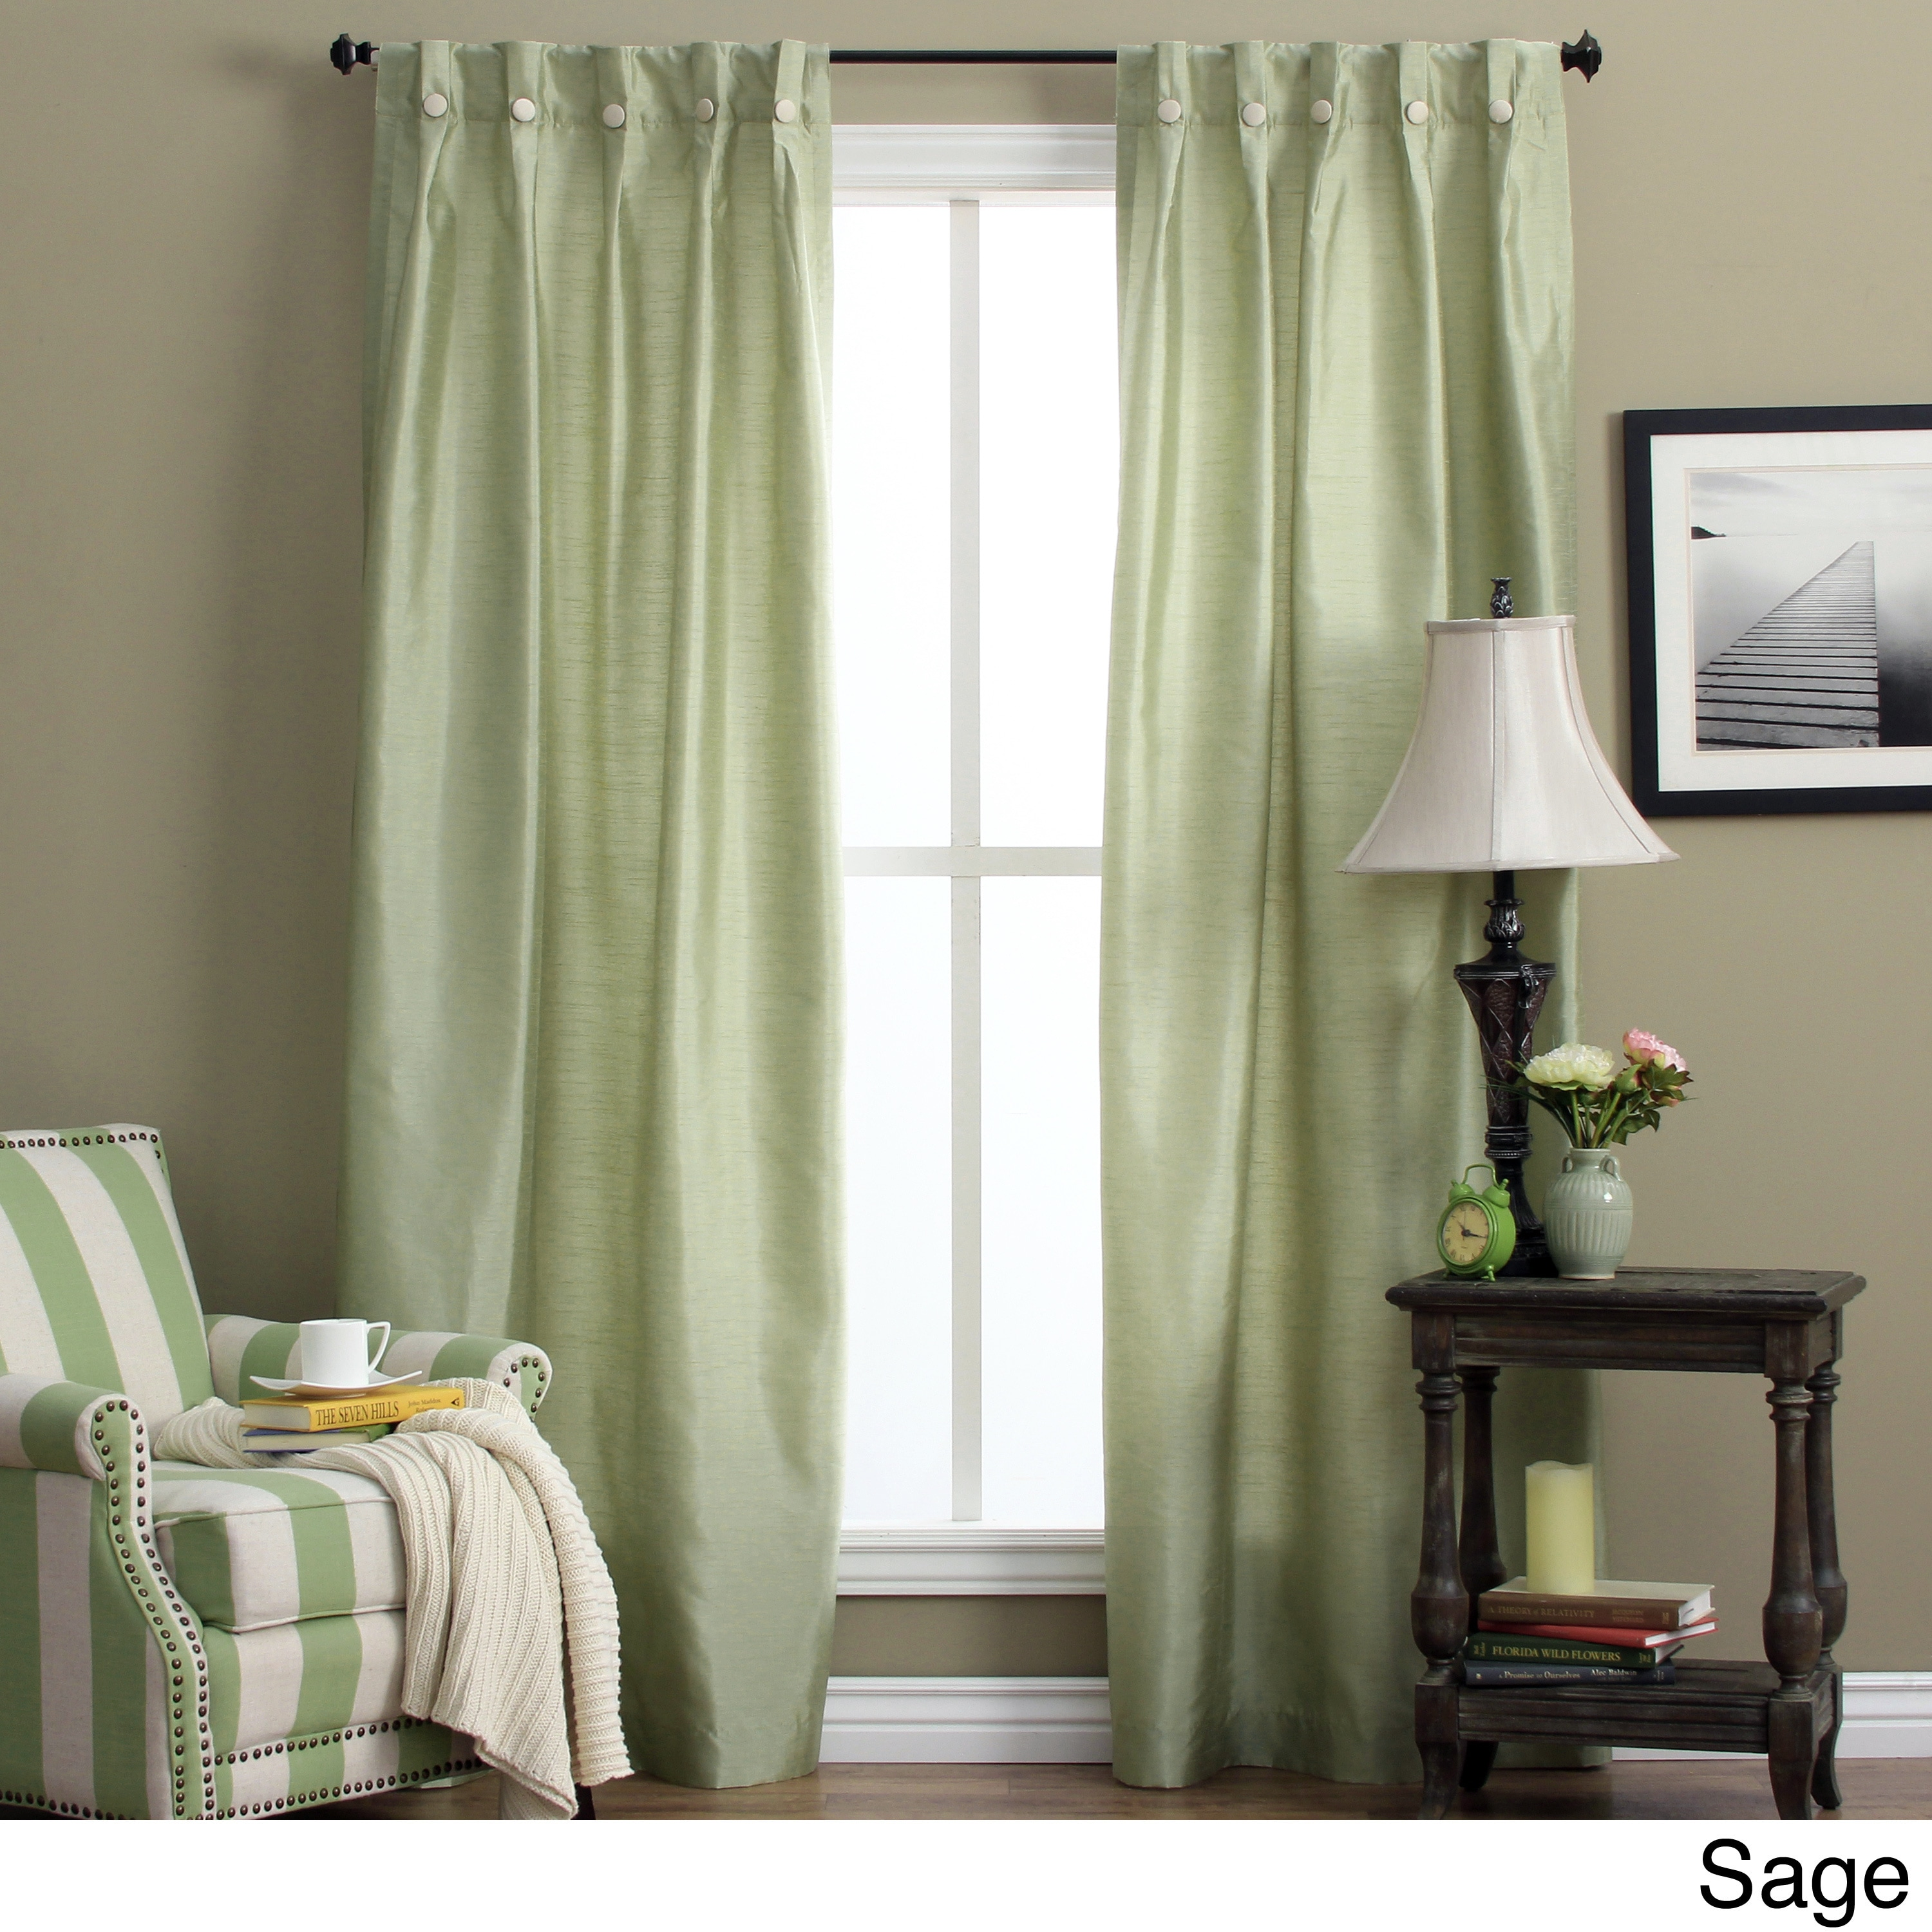 night people drapes day looking let door in at patio pin tab the back sunlight during curtains from keep